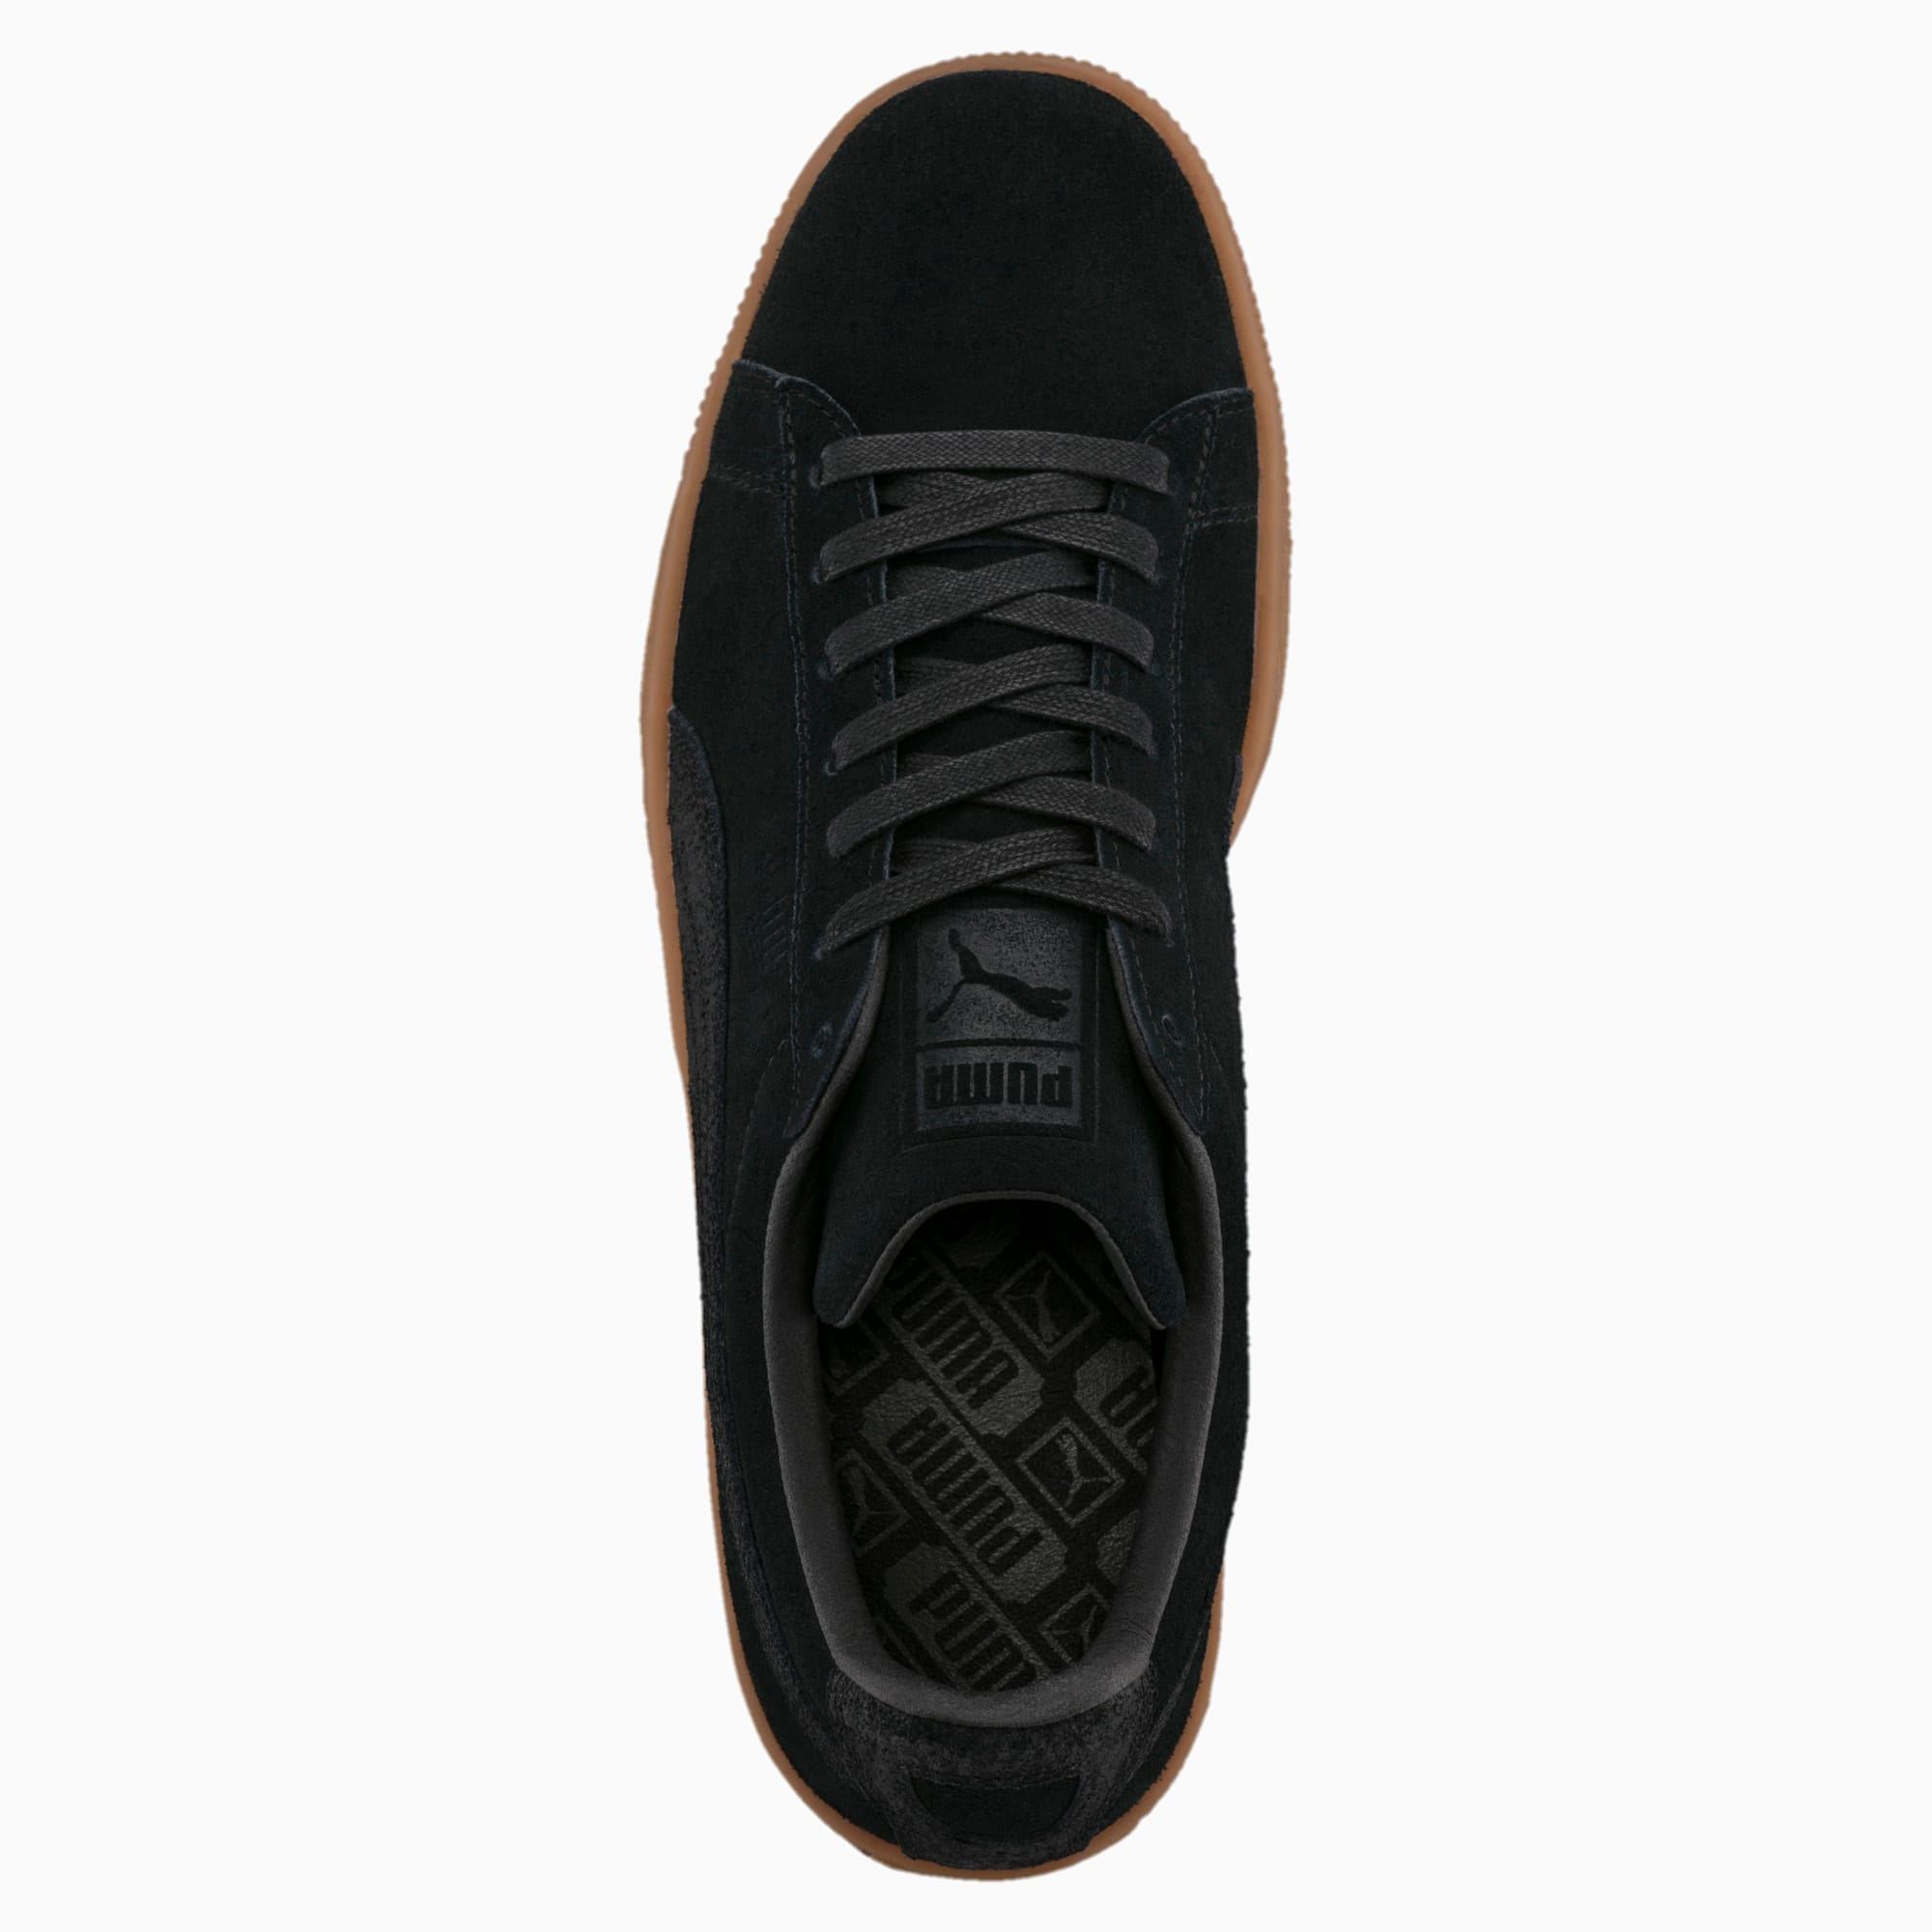 Suede Classic Natural Warmth Sneakers